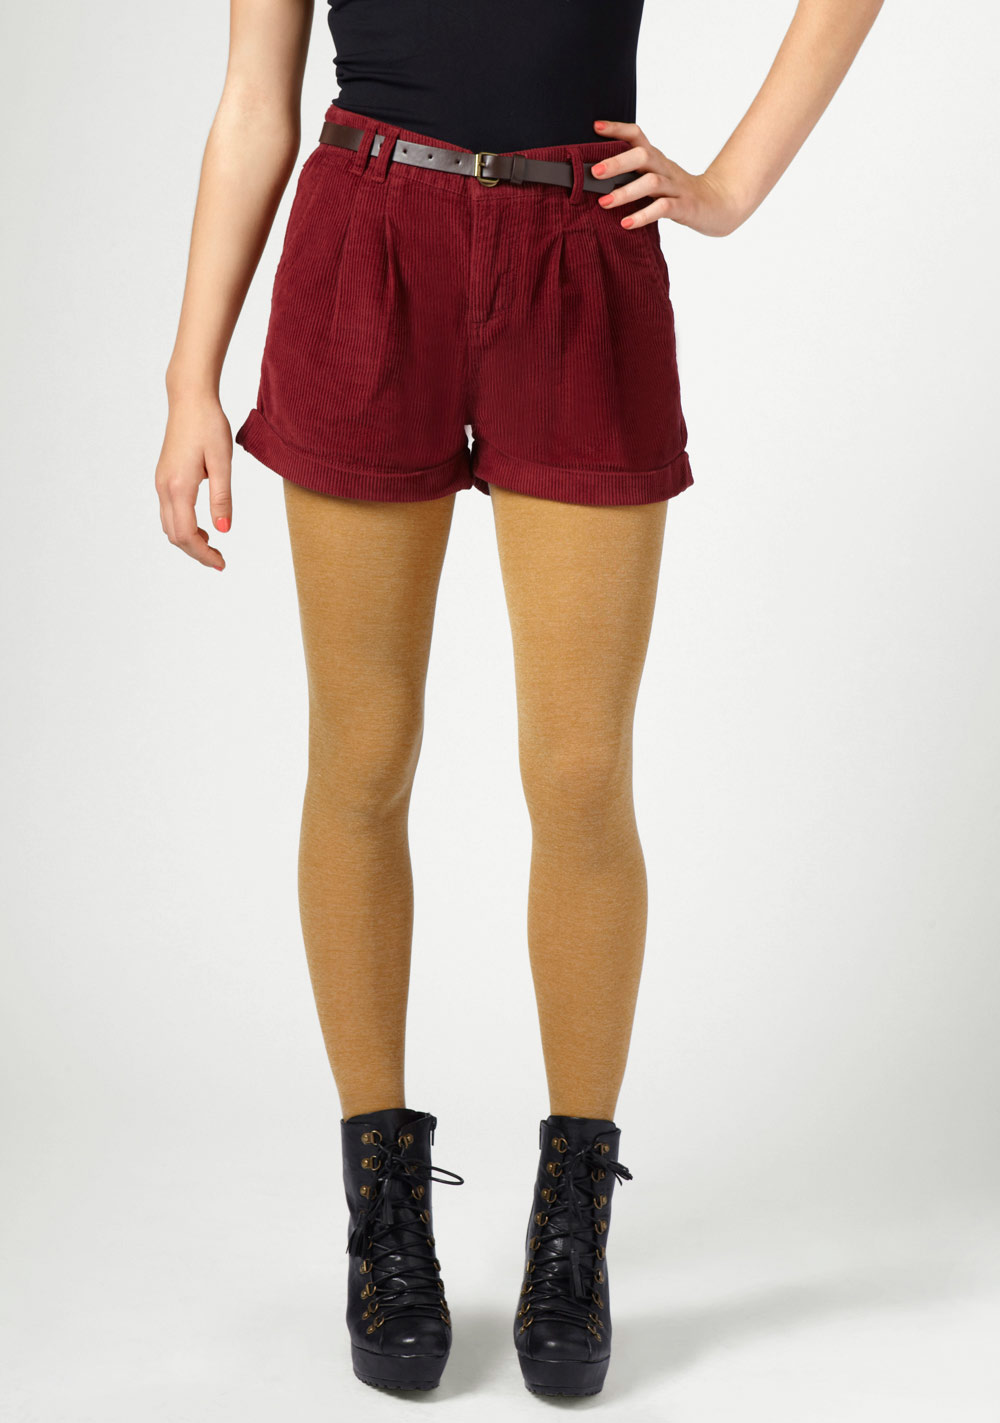 Find burgundy shorts men at ShopStyle. Shop the latest collection of burgundy shorts men from the most popular stores - all in one place.